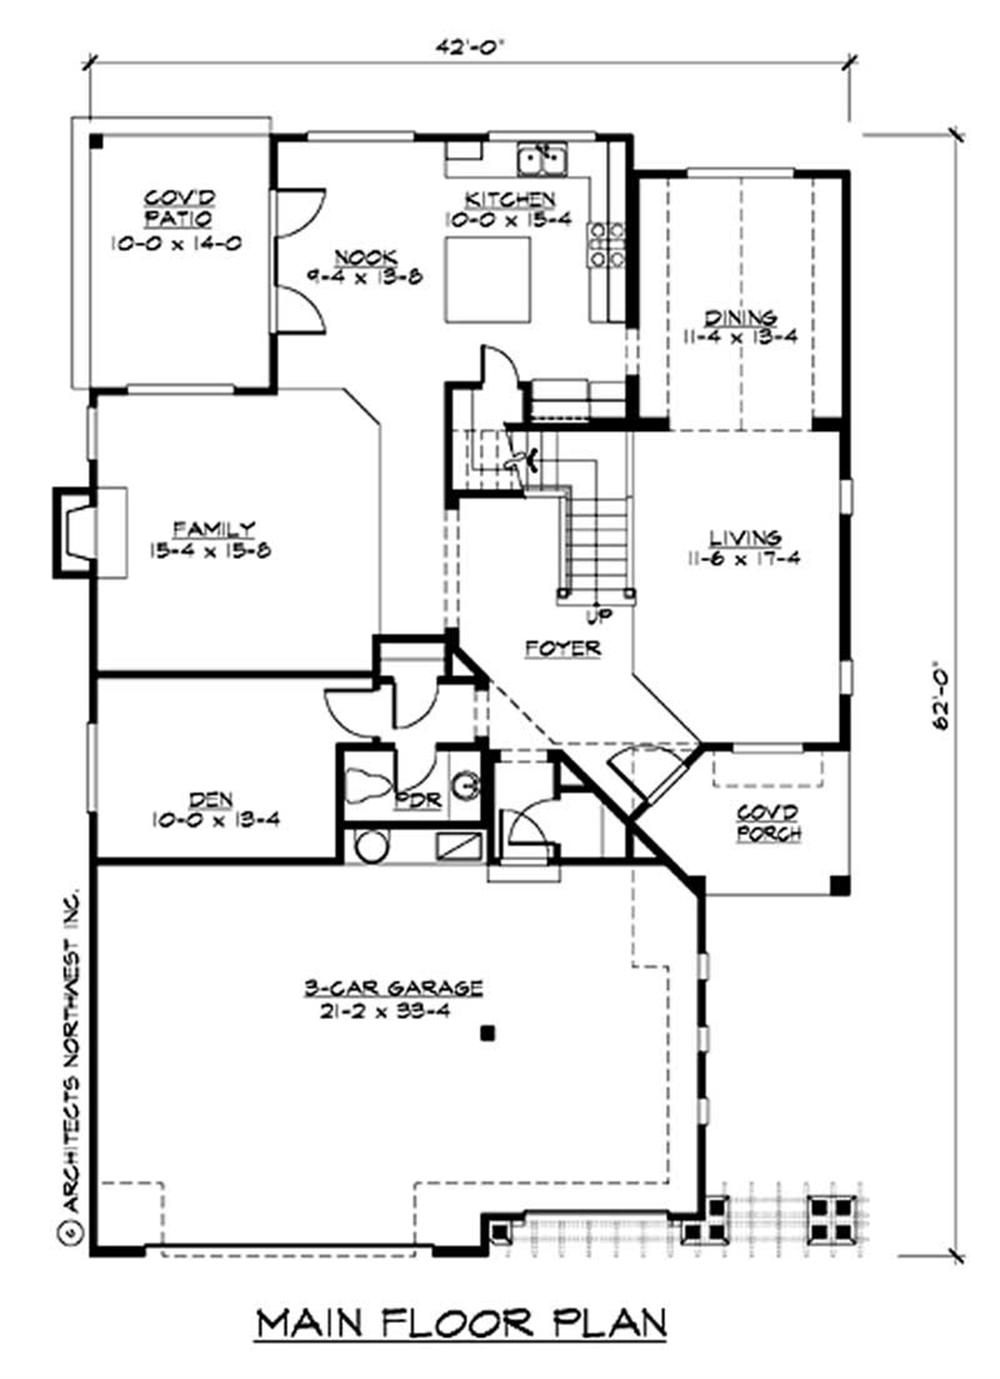 Large Images For House Plan 115 1416